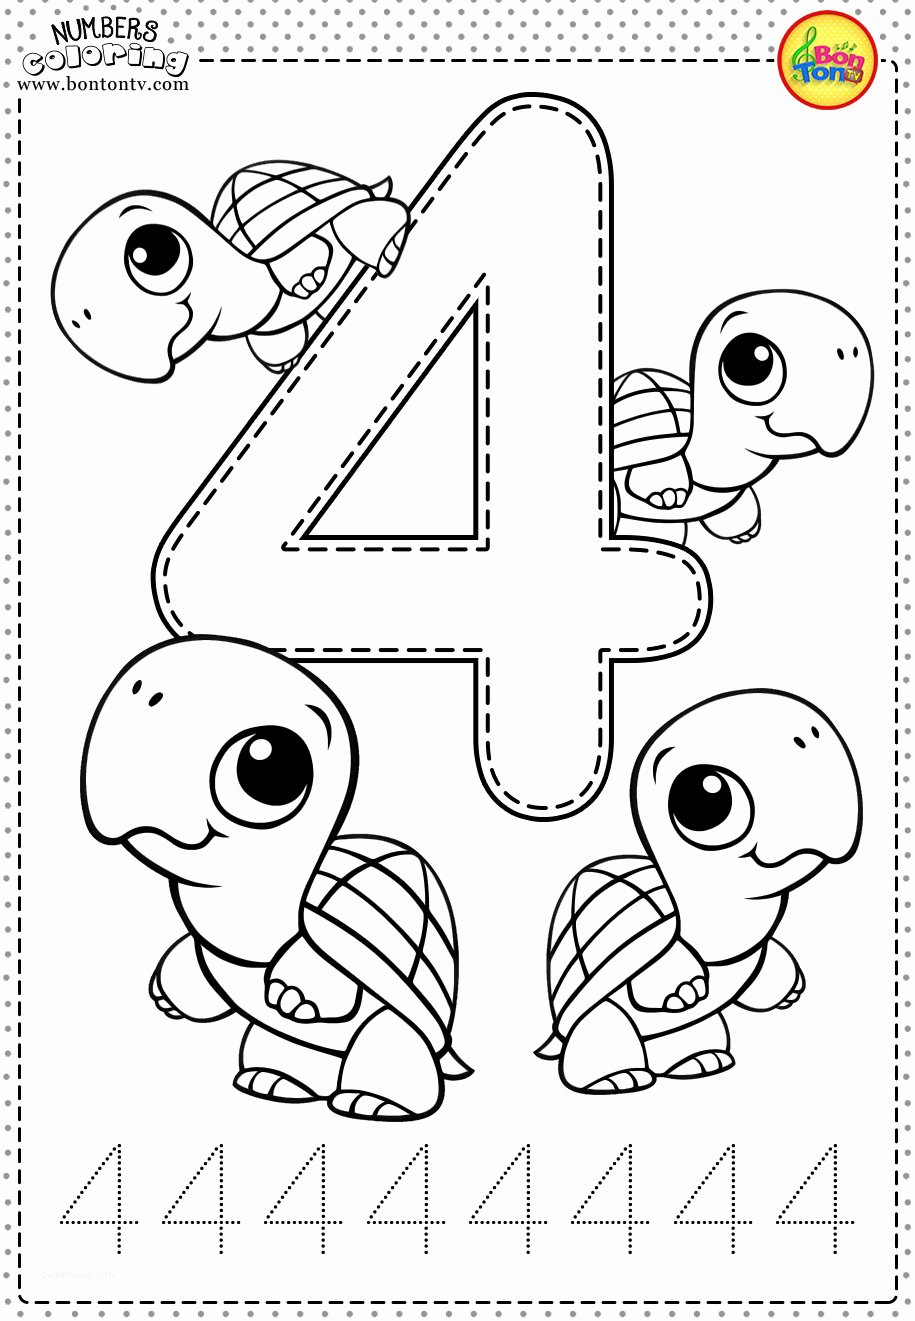 Number Coloring Worksheets for Preschoolers New Coloring Book Printable for toddlers New Number Preschool